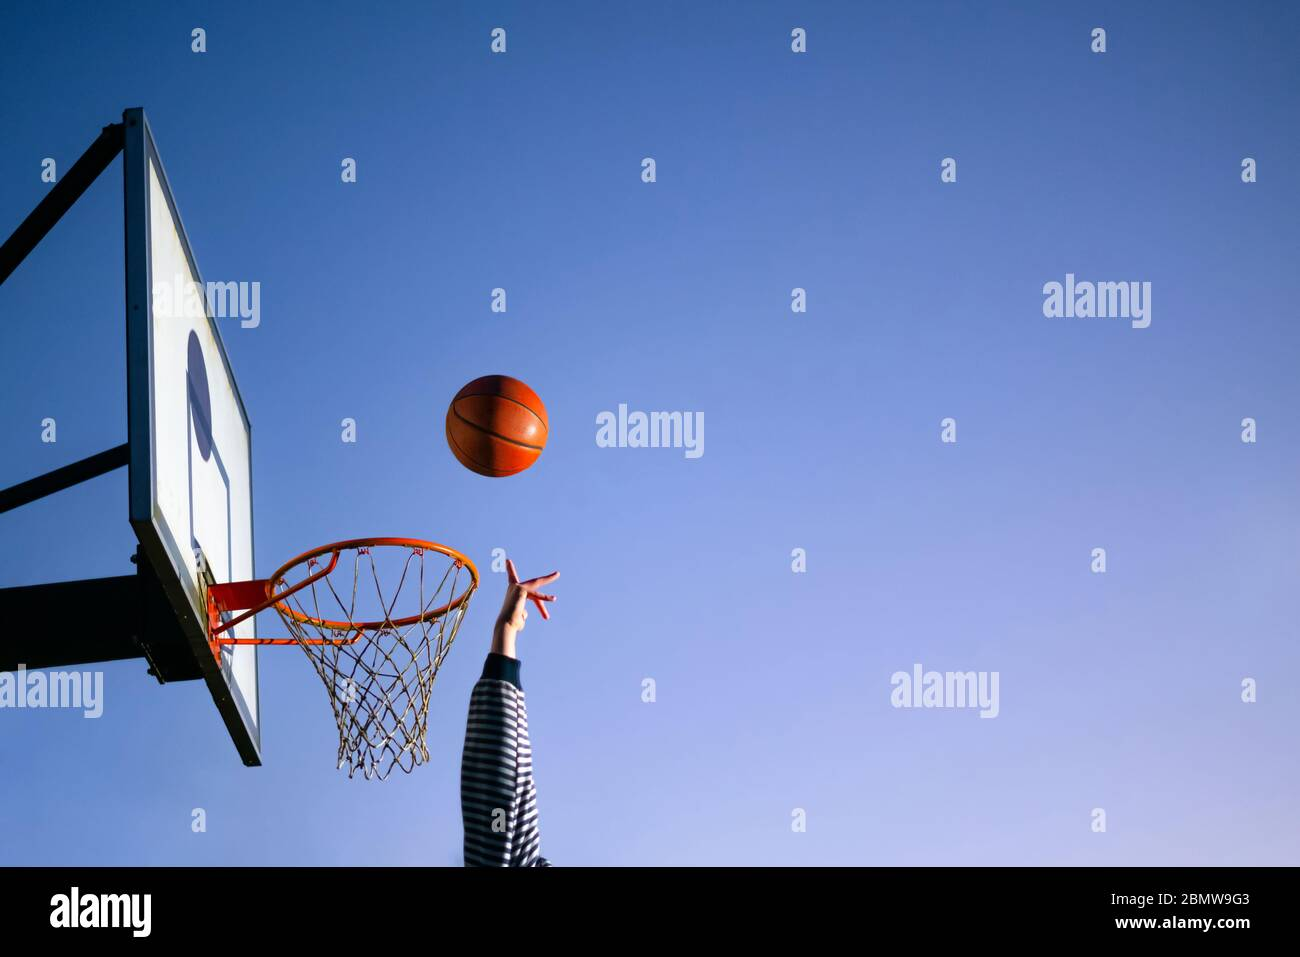 Street basketball ball player throwing ball into the hoop. Close up of hand, orange ball above the hoop net with blue sky in the background. Concept o Stock Photo